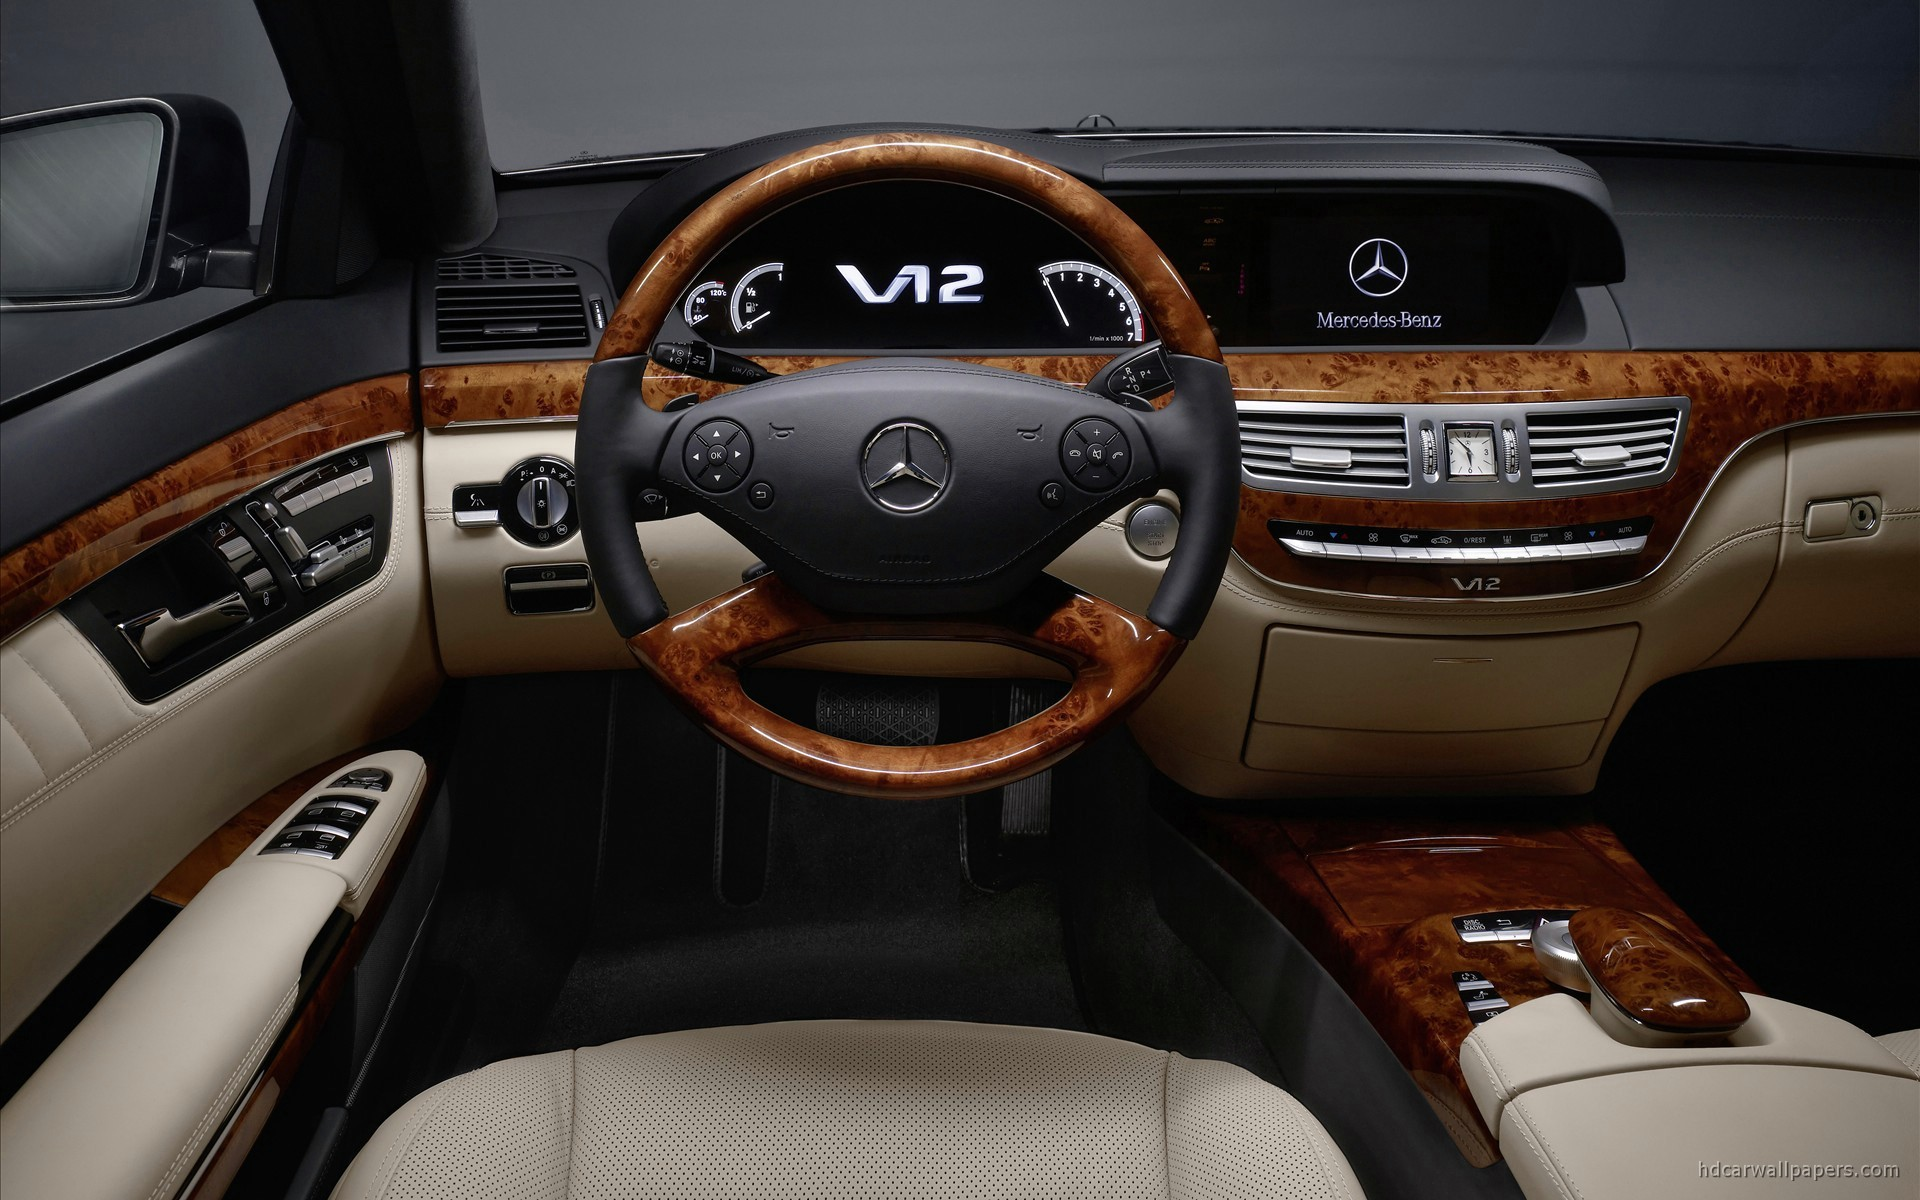 2010 mercedes benz s class interior wallpaper hd car for Interior parts for mercedes benz